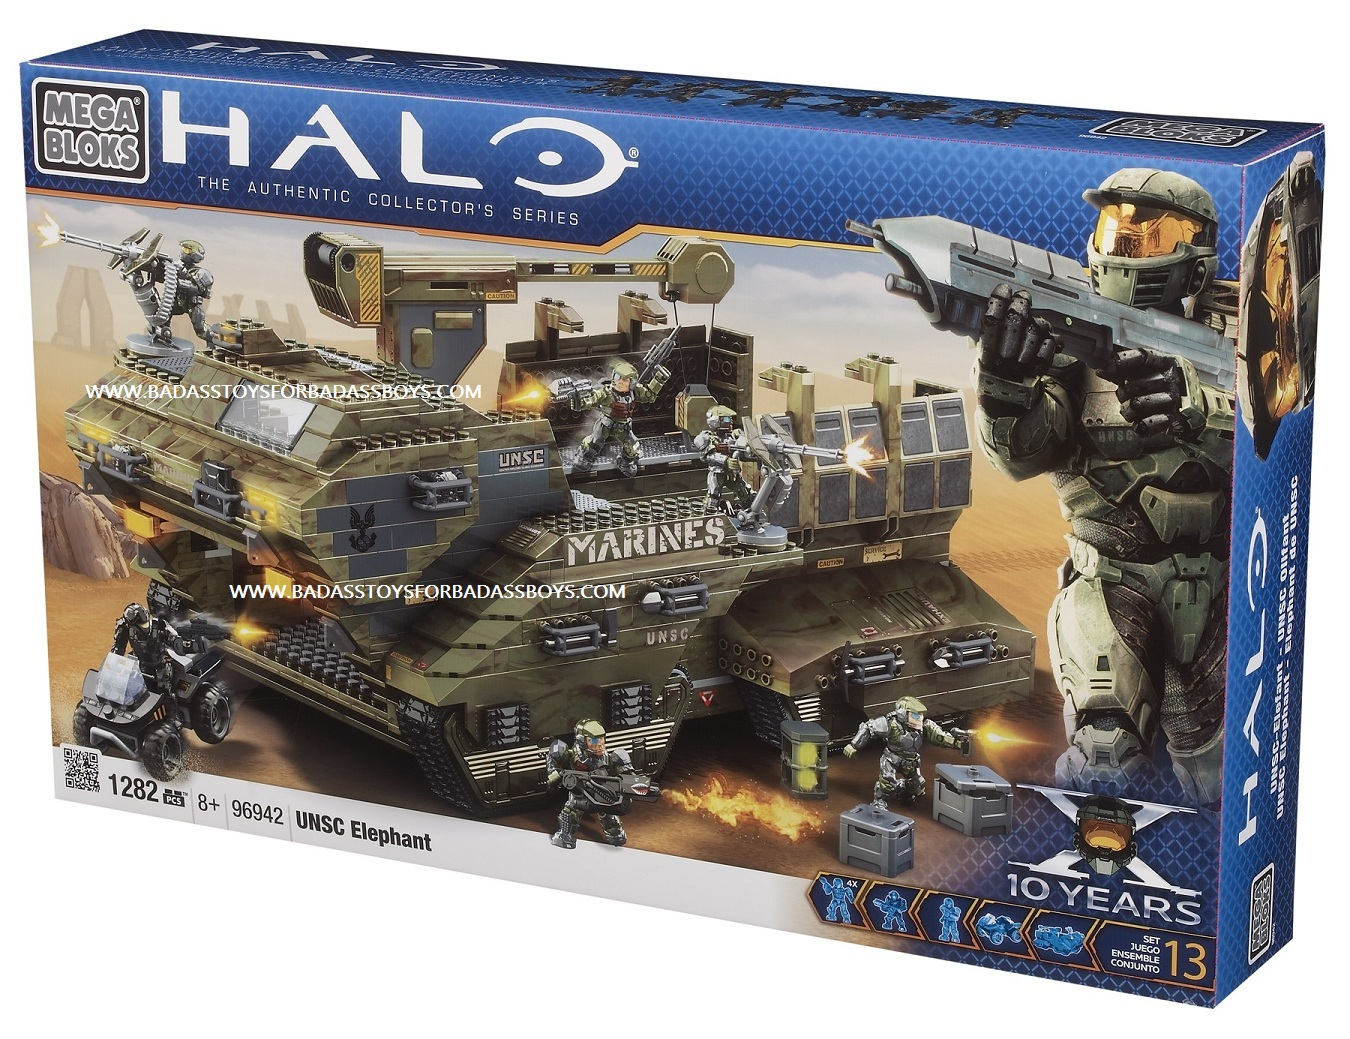 Halo Mega Bloks UNSC Elephant officially licensed Halo Mega Bloks product at B.A. Toys.